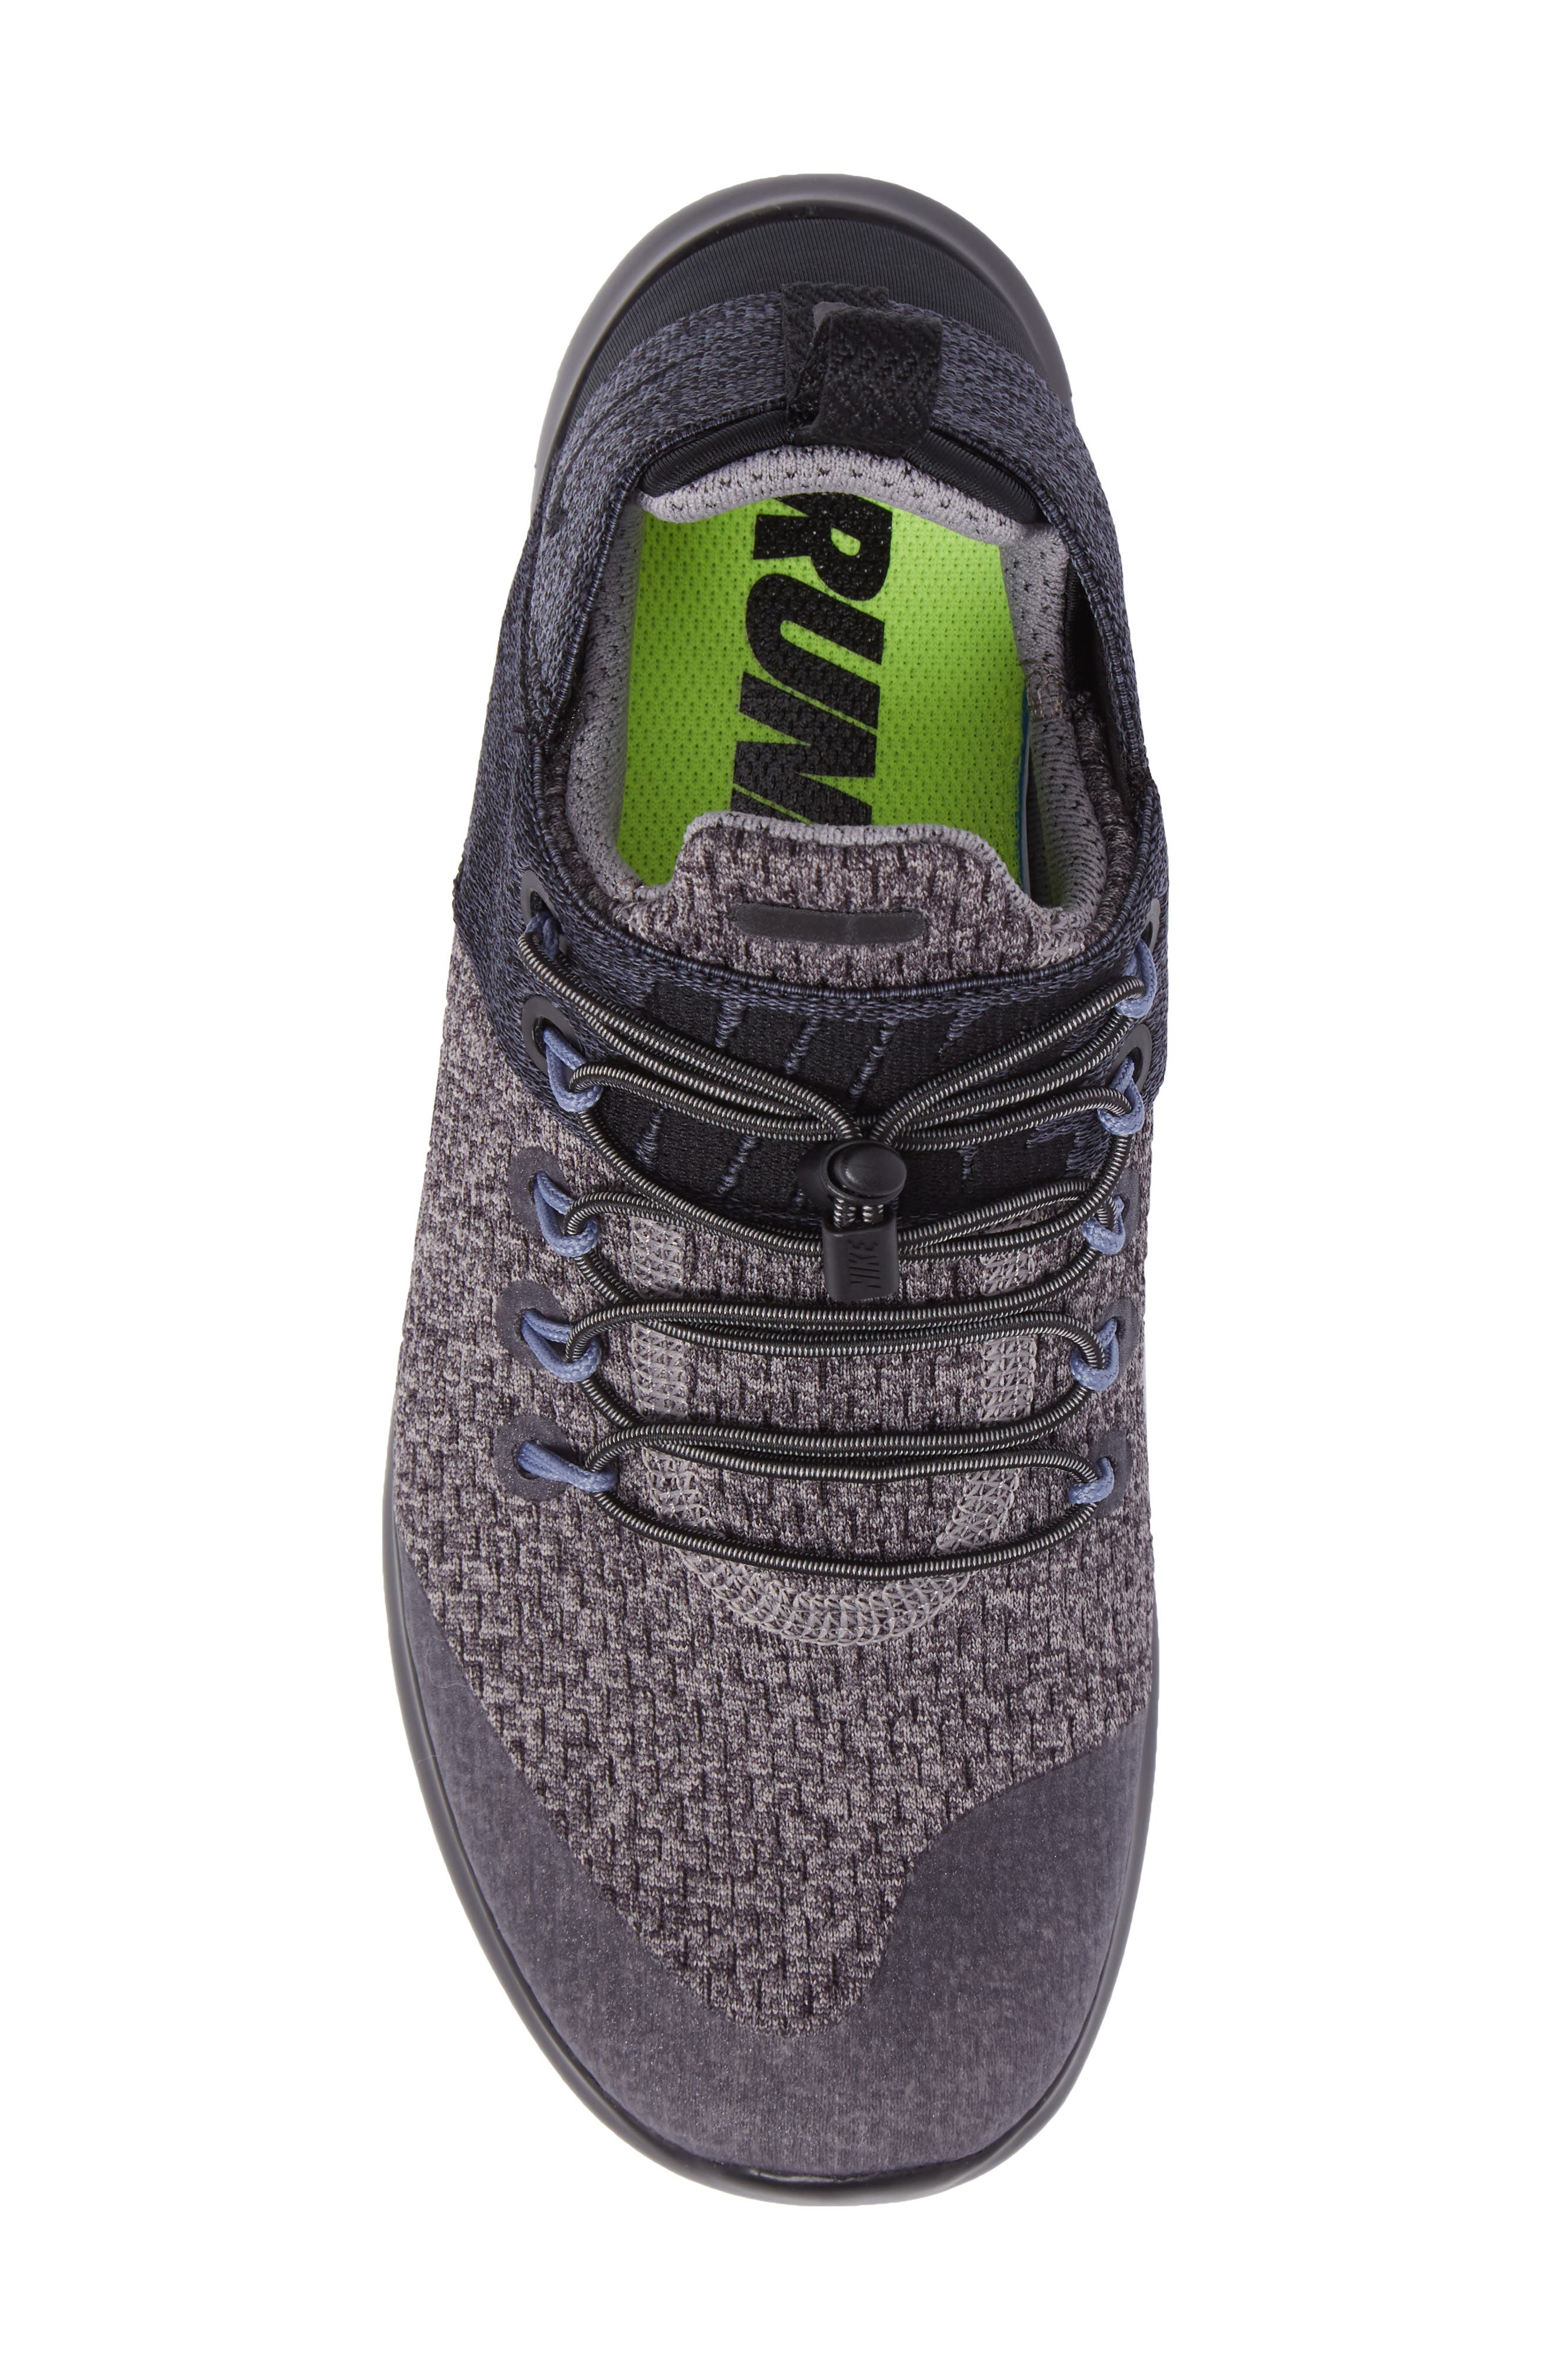 Free RN Commuter 2017 Premium Running Shoe,                             Alternate thumbnail 5, color,                             001